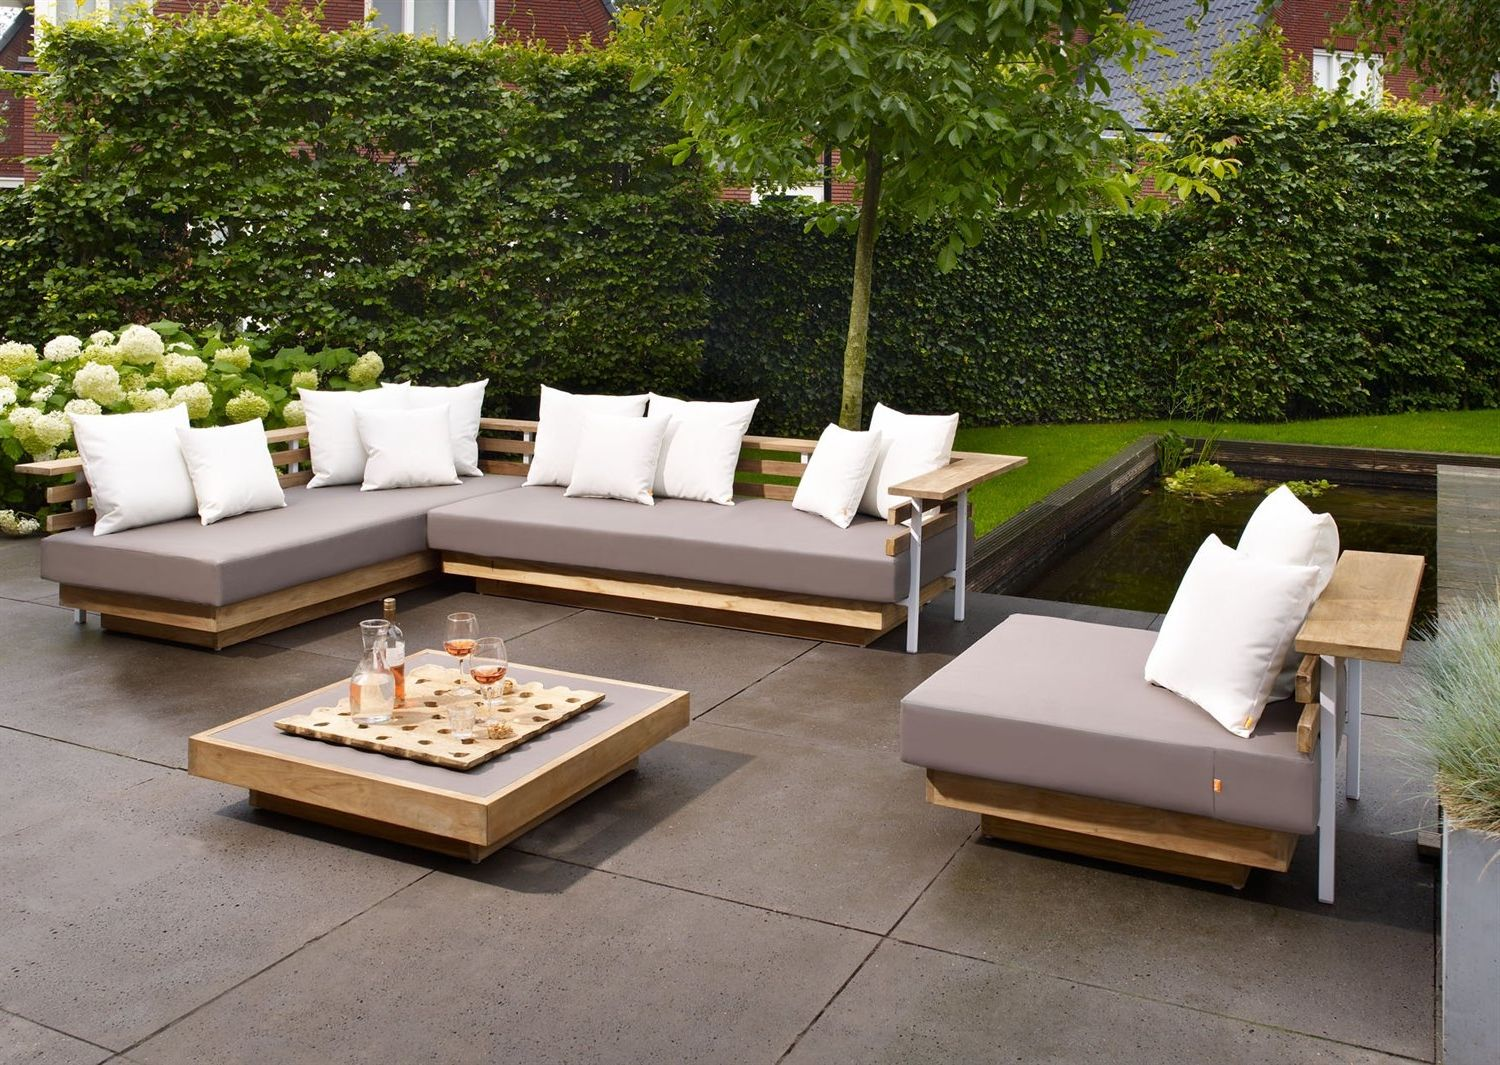 Lounge sofa outdoor holz  outdoor lounge sofa | outdoor lounge | Pinterest | Gärten